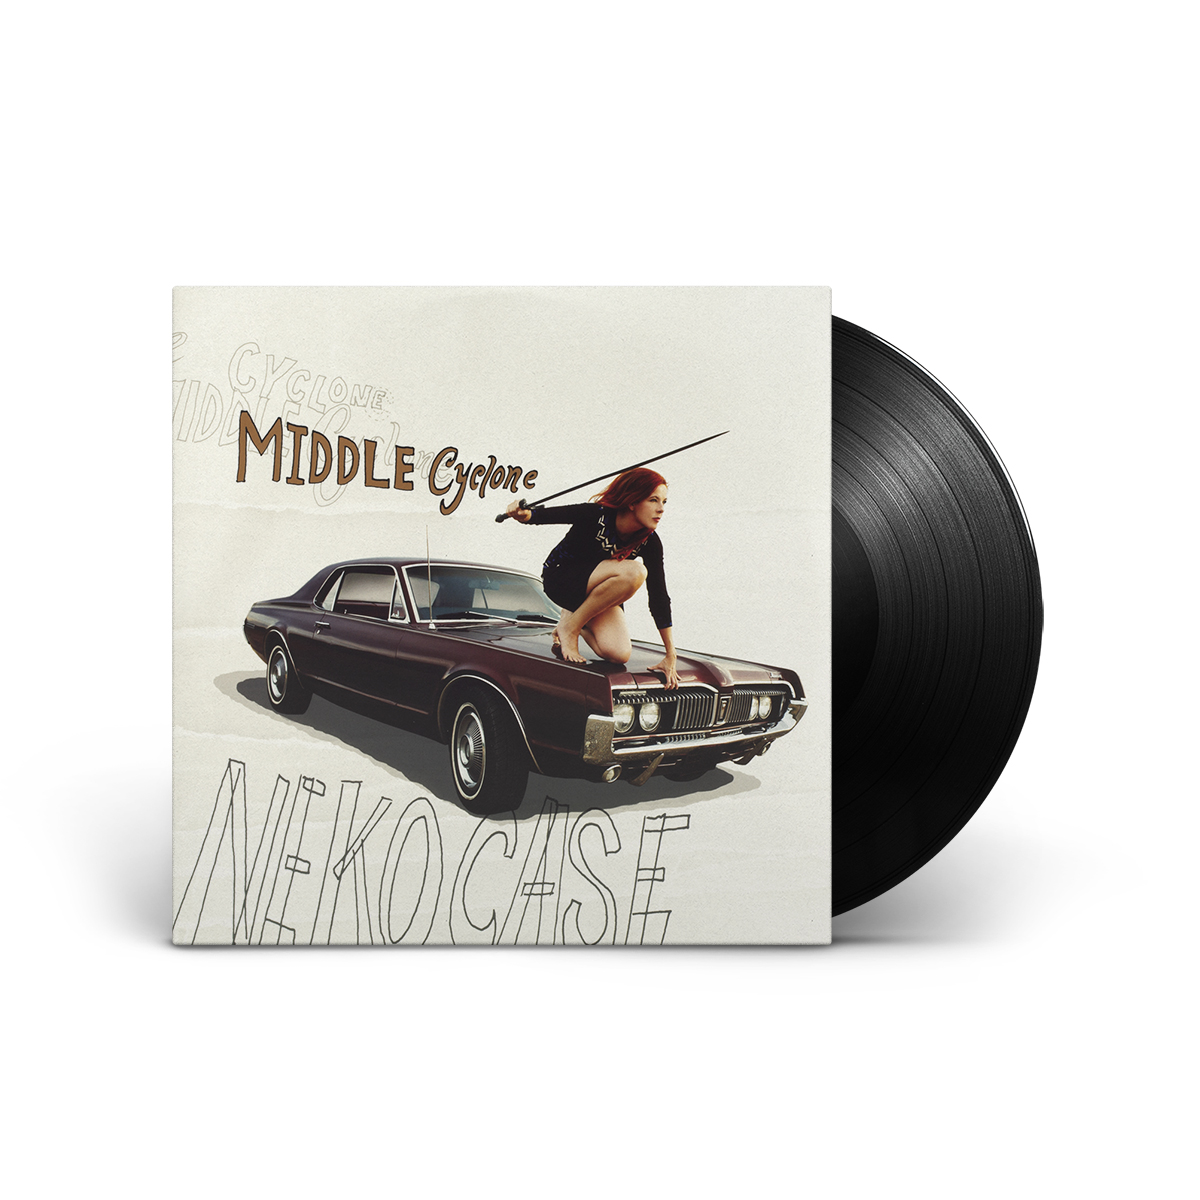 Middle Cyclone - LP